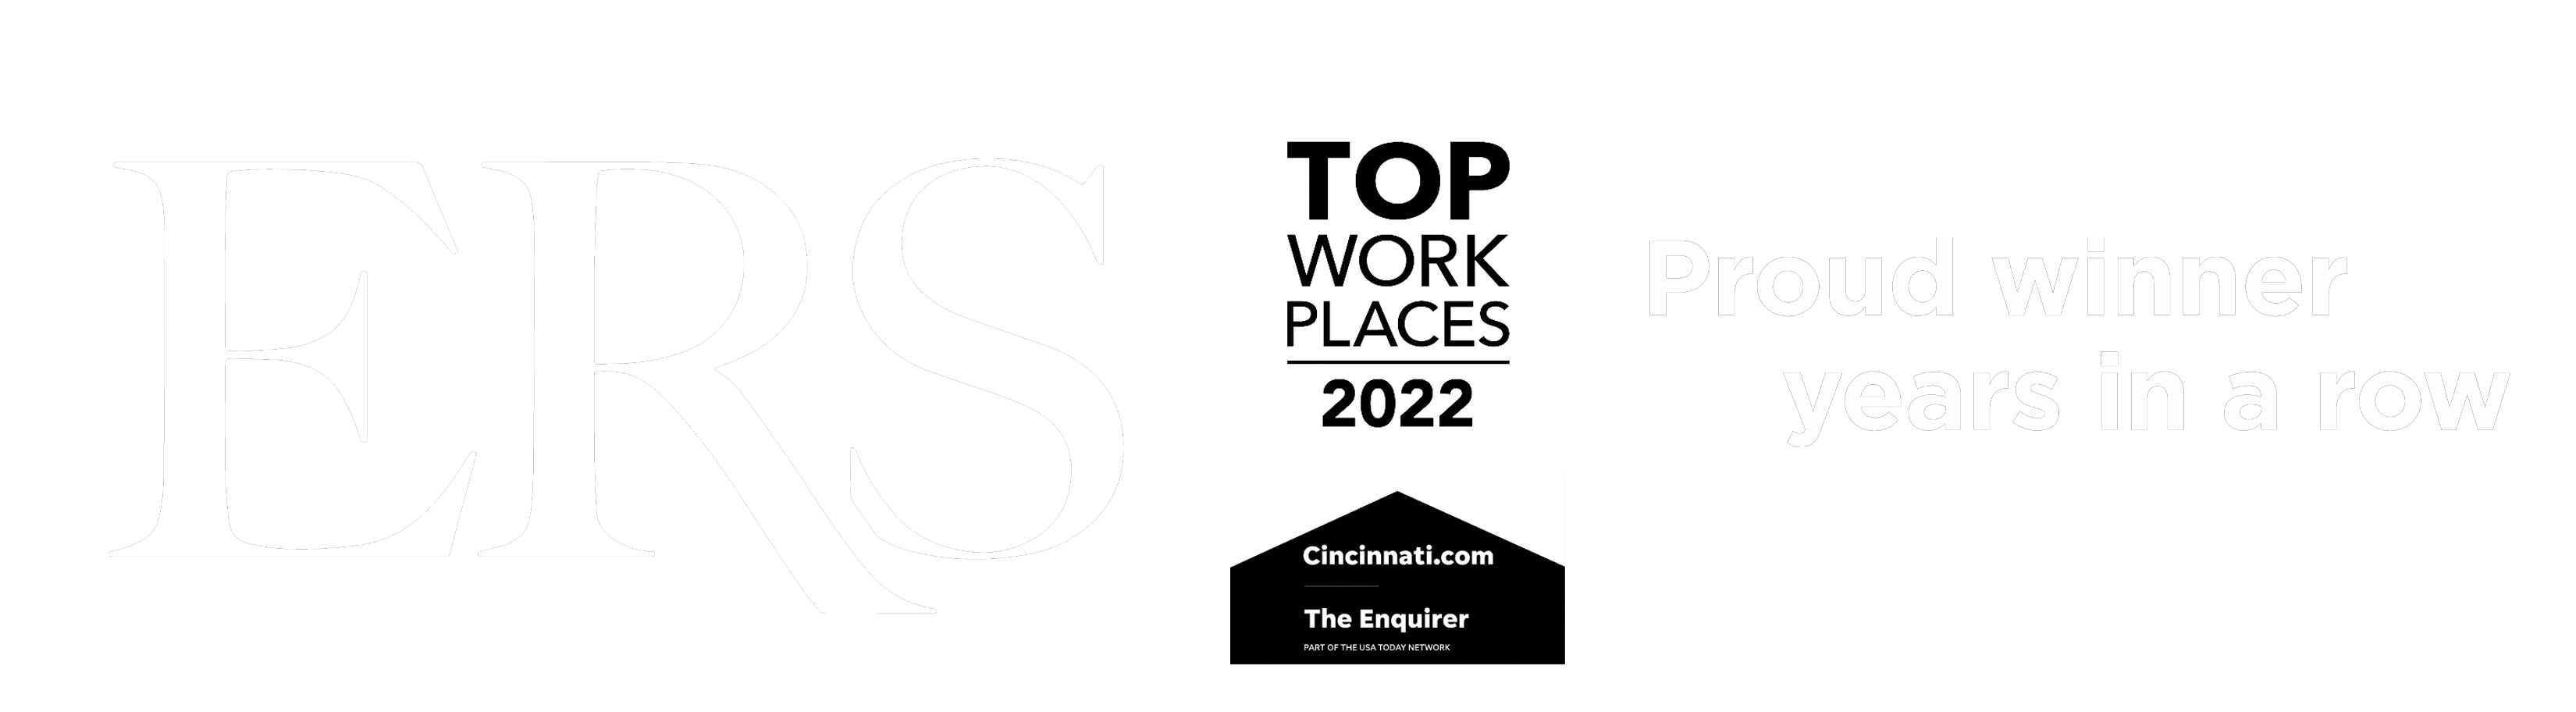 ERS - Top Places to Work 2021